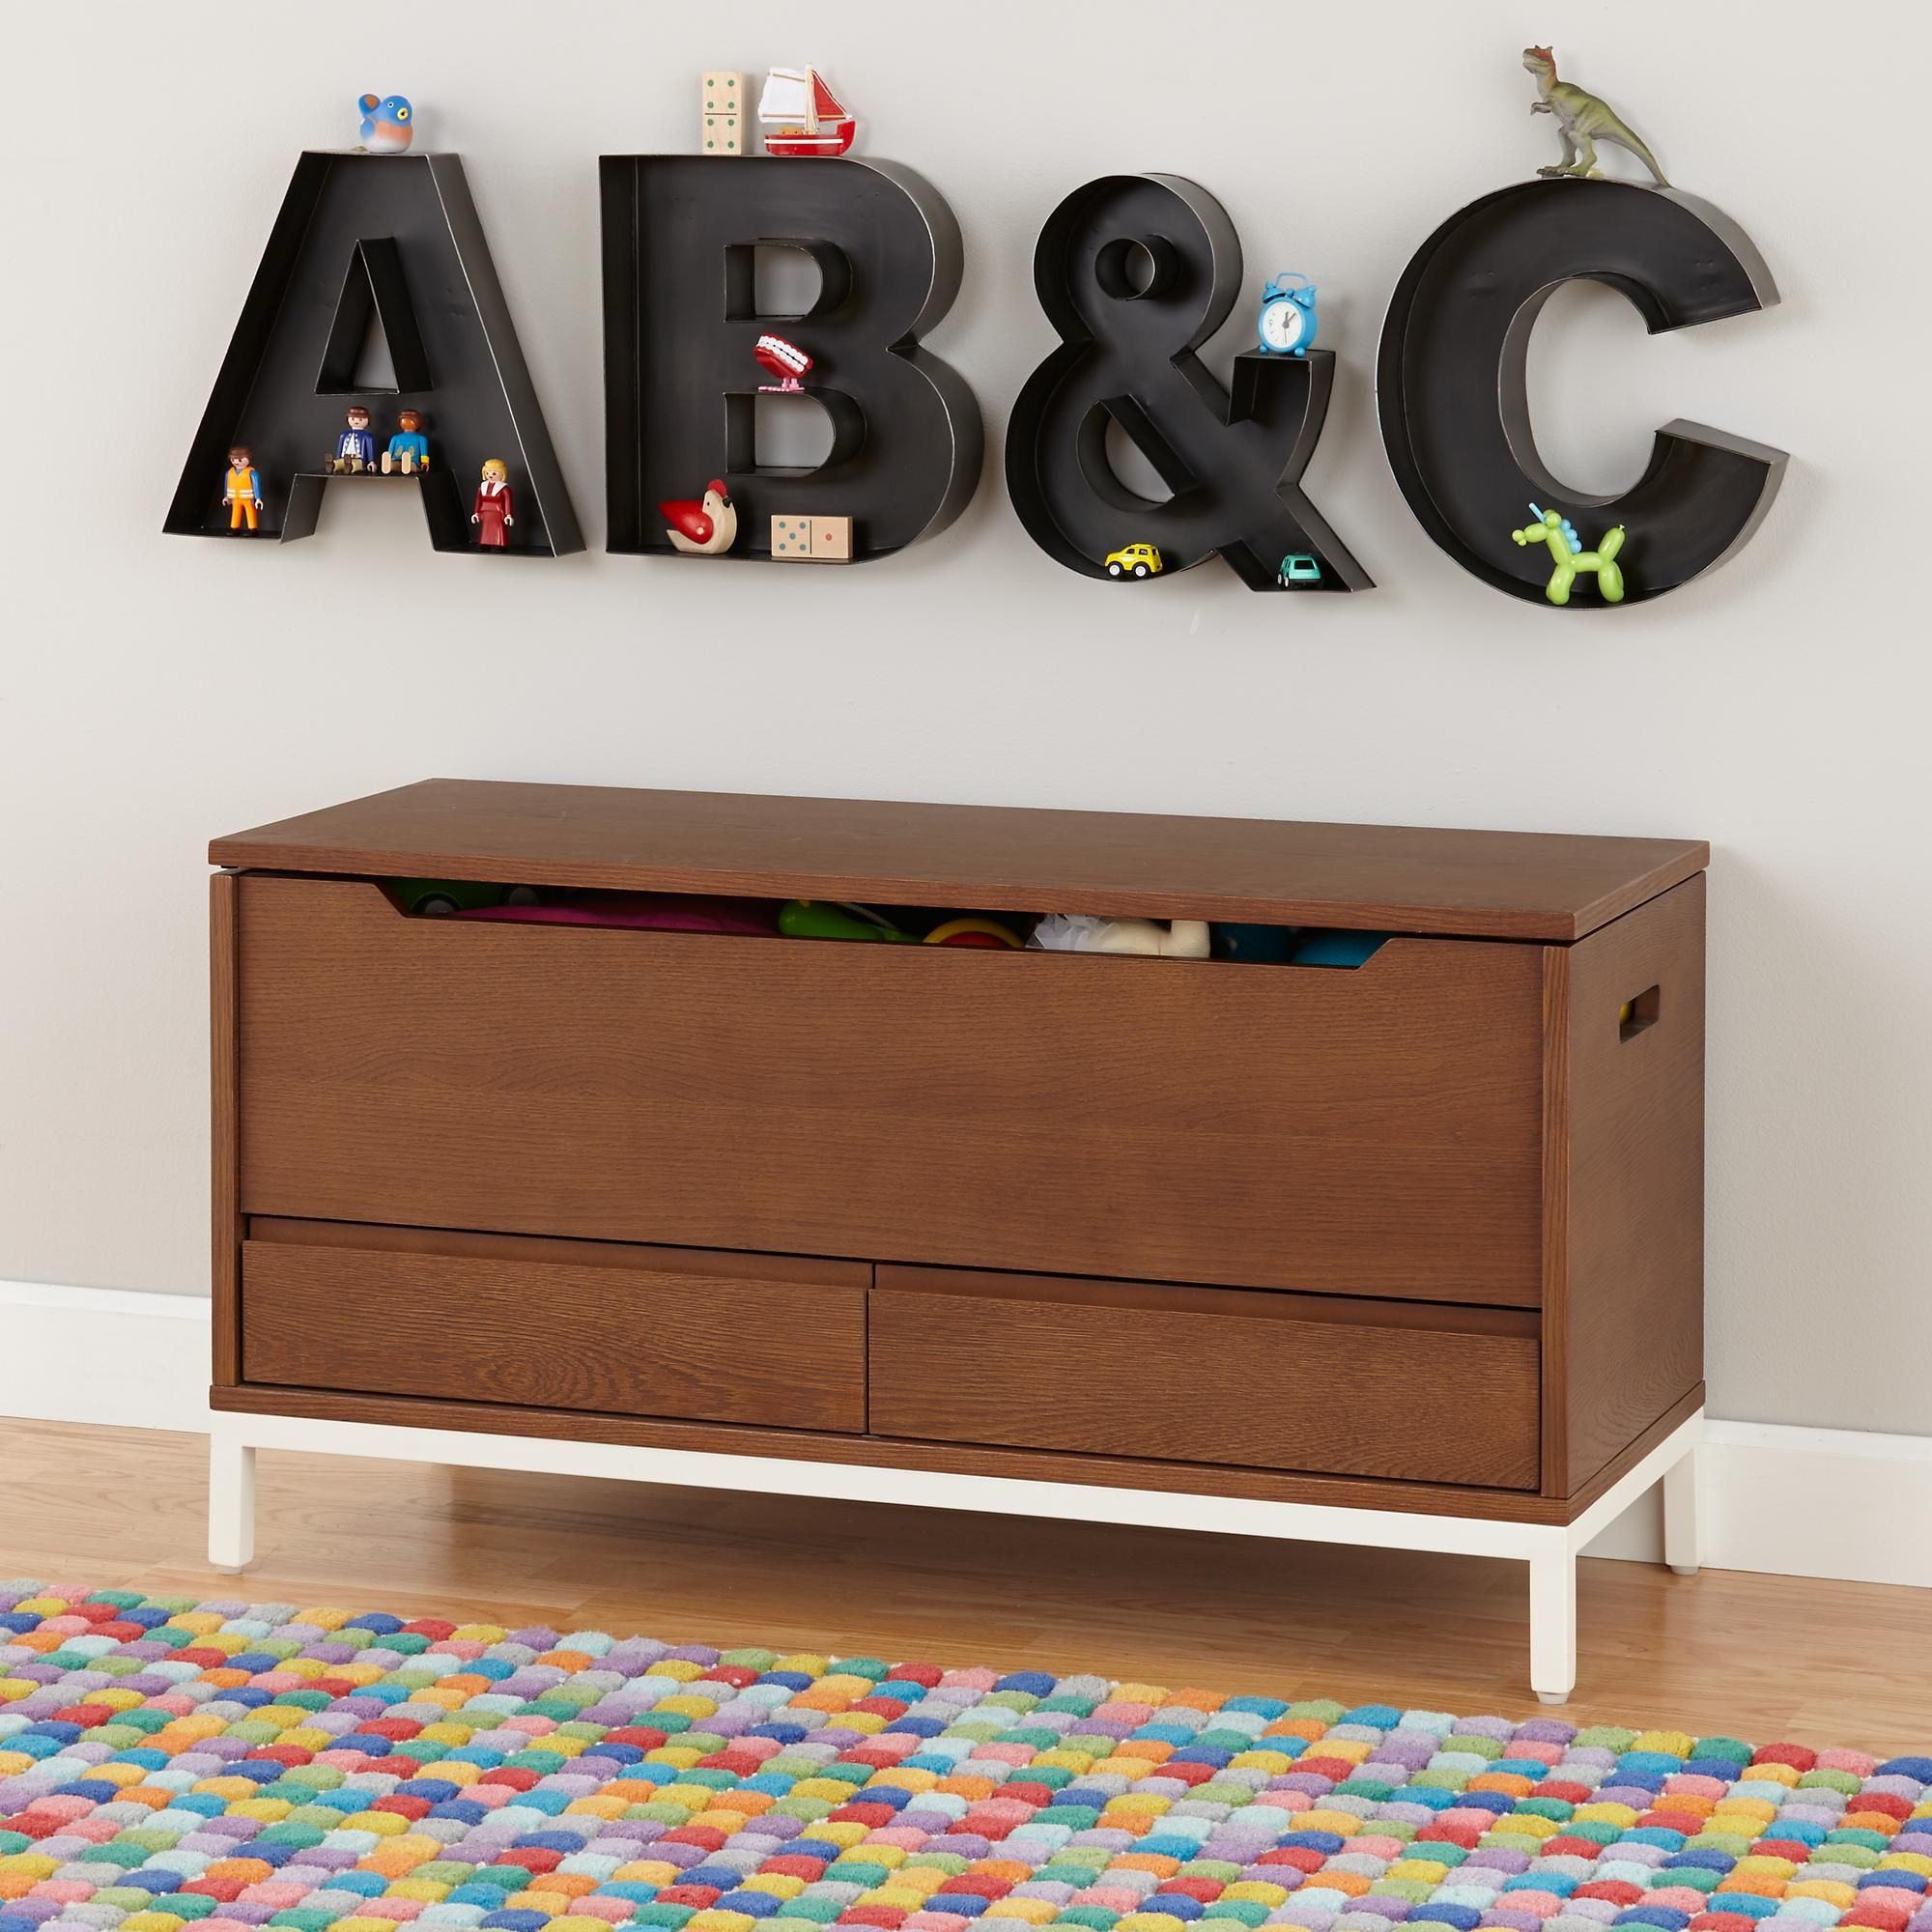 Wall Decor Boxes Magnificent Metal Letters  Hanging Wall Letters Kids Wall Decor